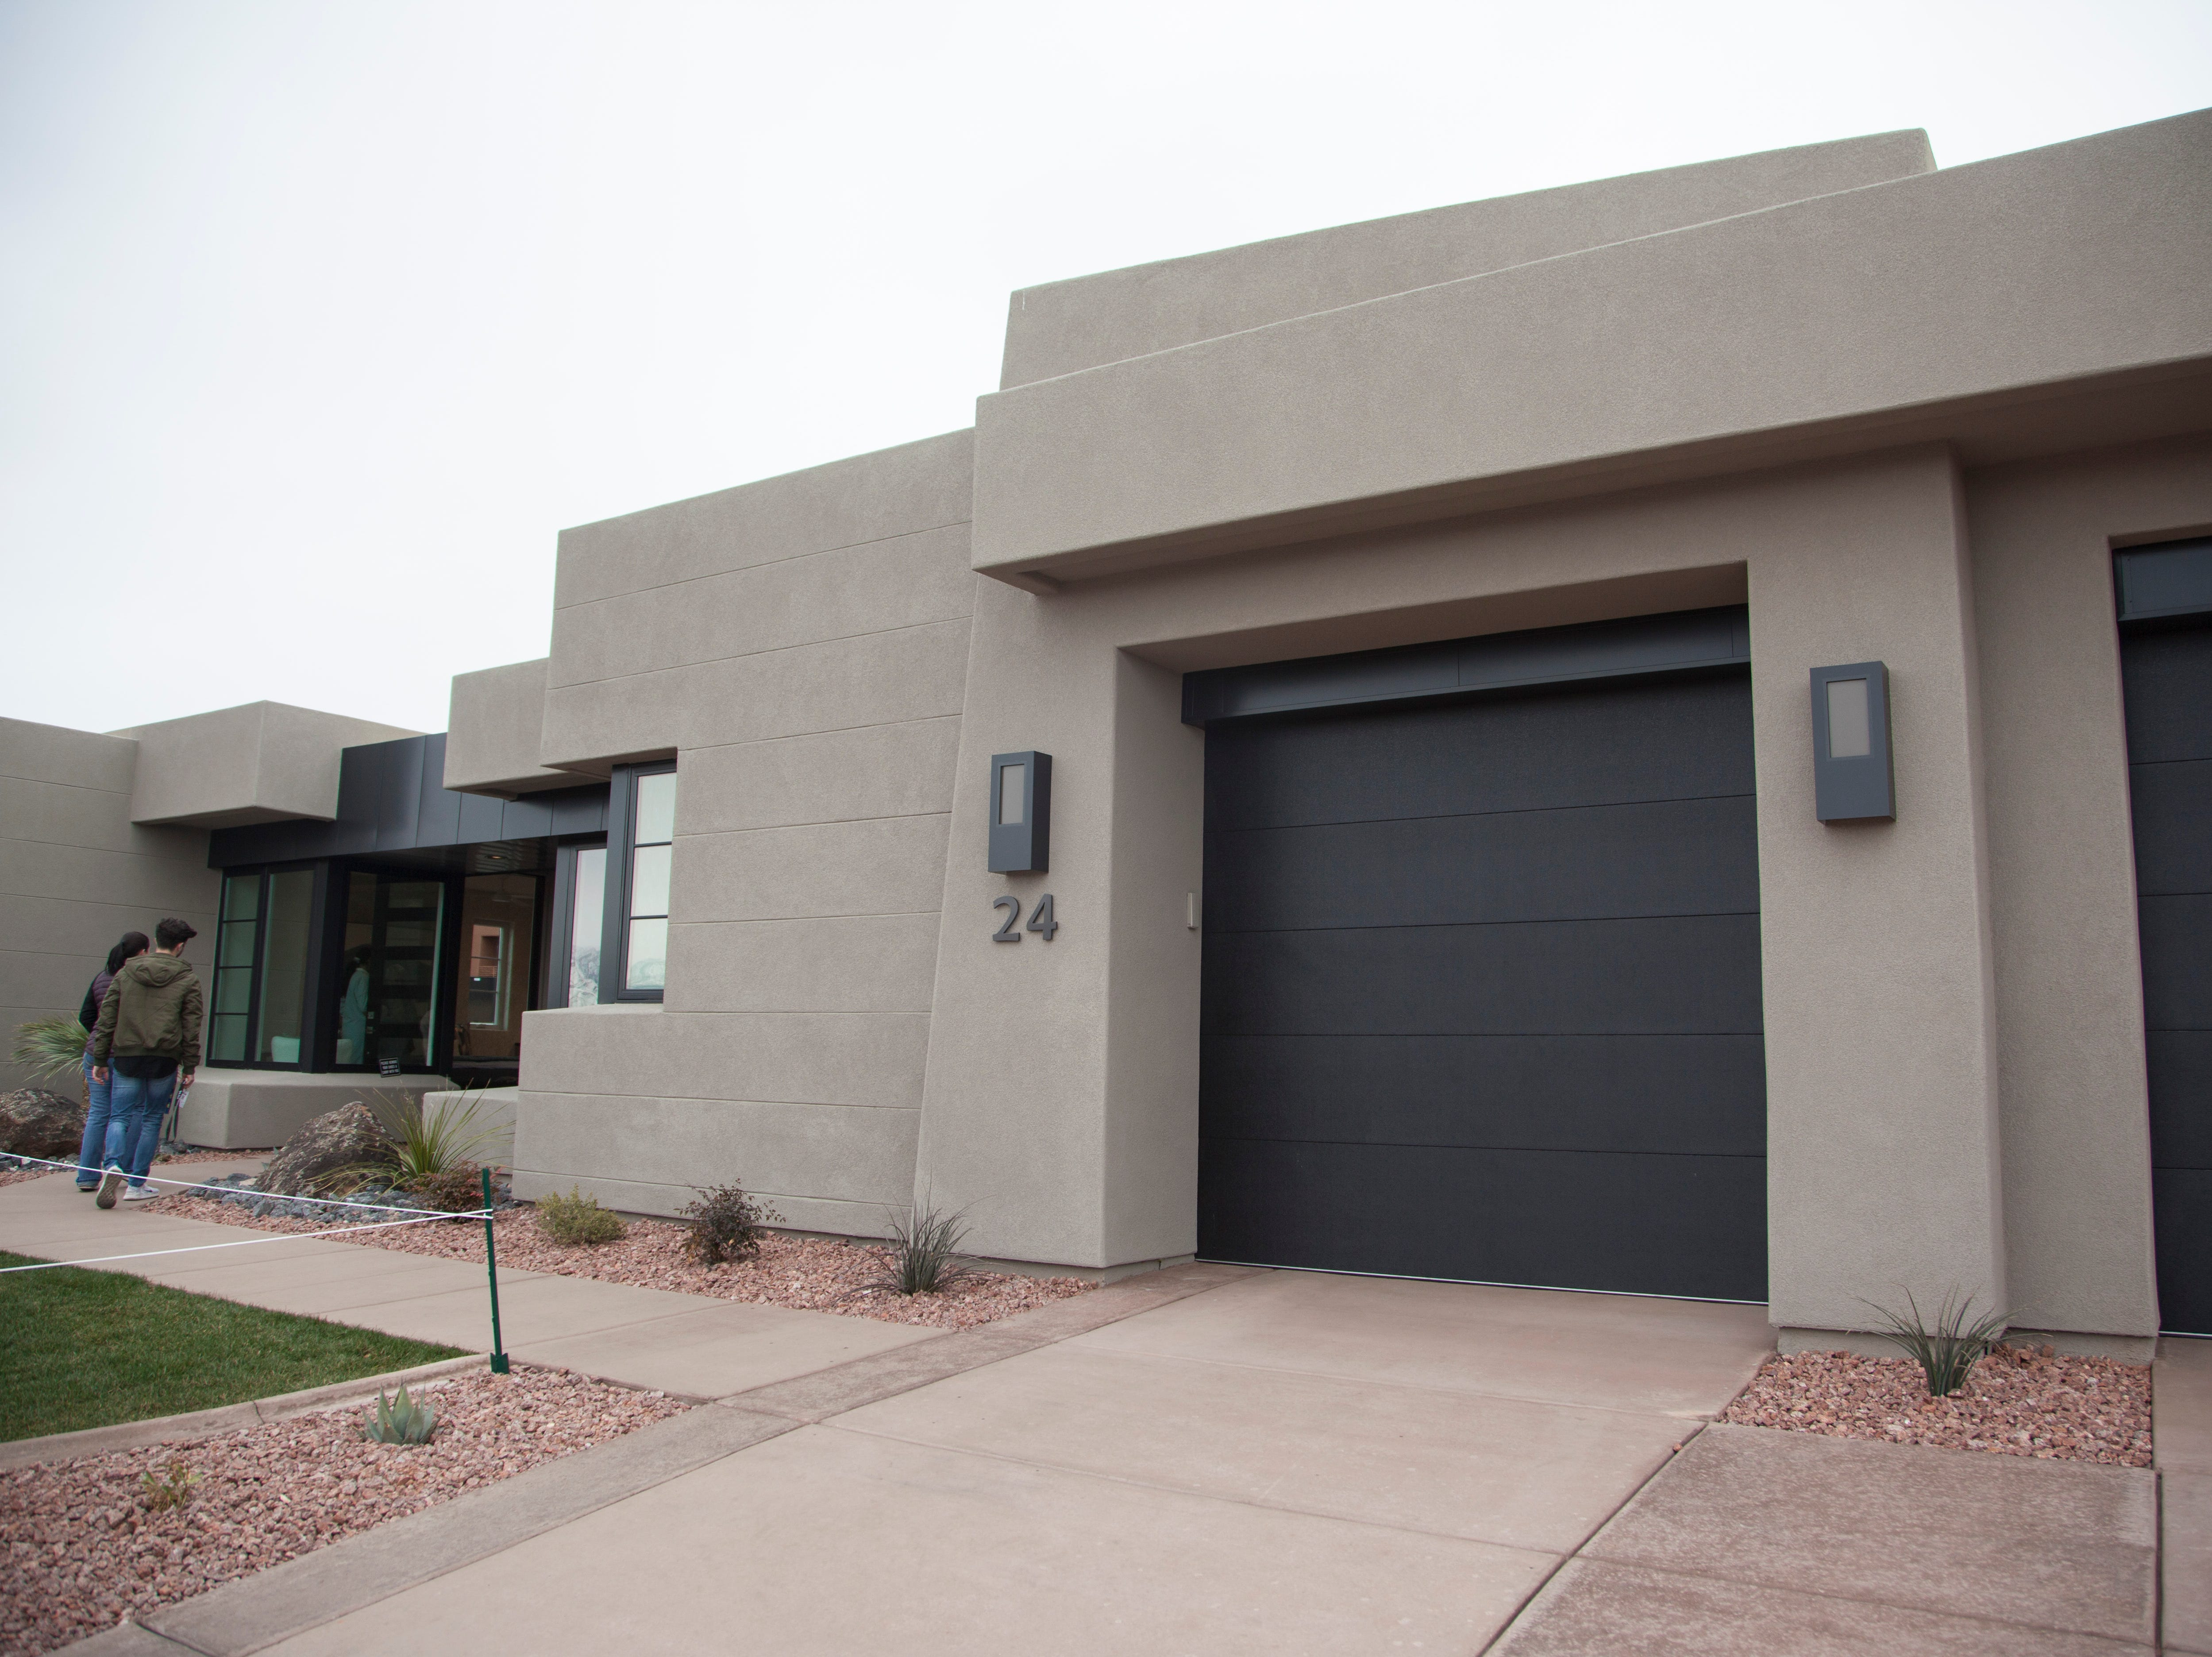 House number 16, Encanto, on the 2019 Parade of Homes Saturday, Feb. 23, 2019.